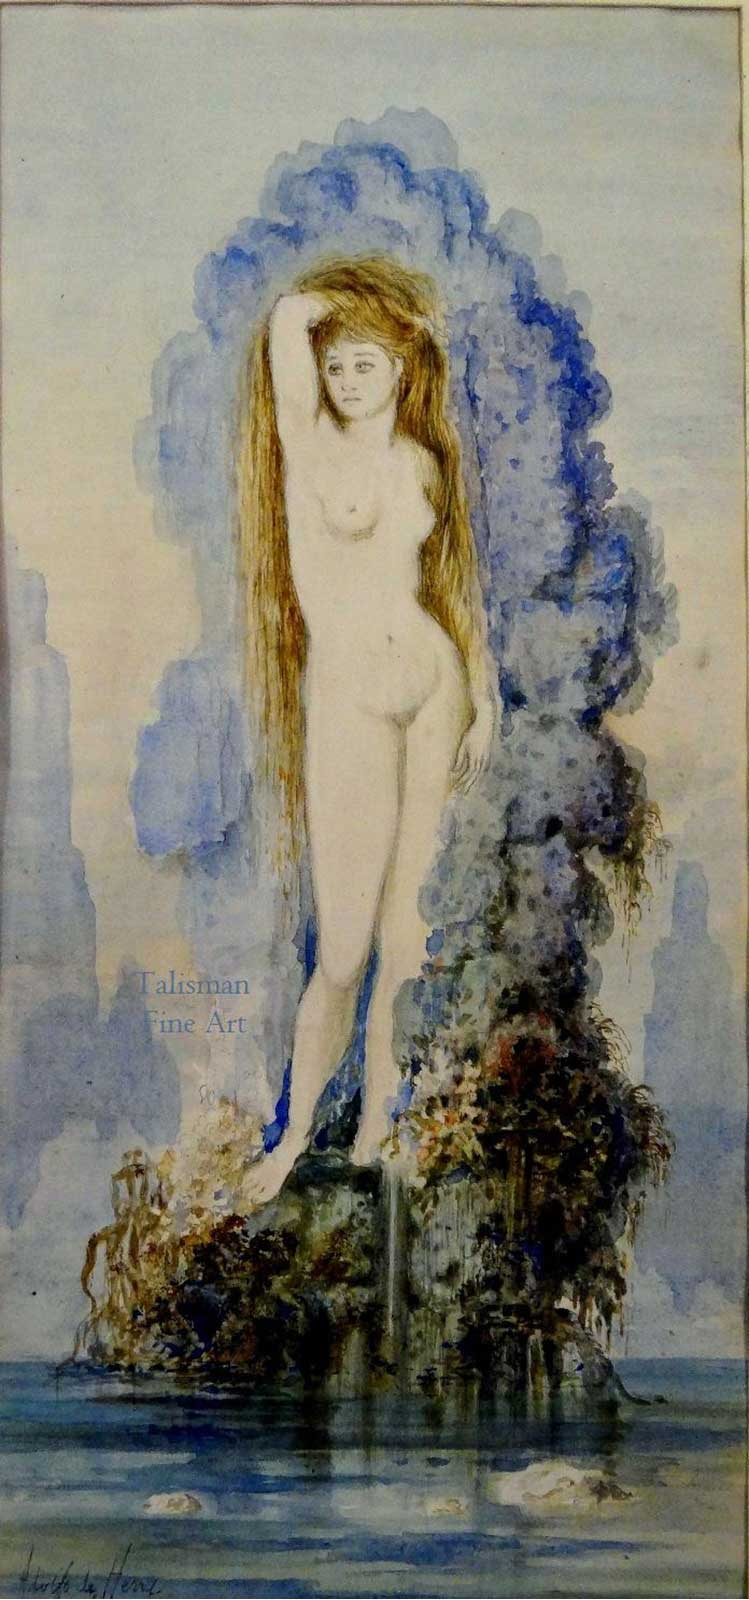 Talusman Fine Art Adolfo de Herra - Venus (1890) (We have more works by Adolfo de Herra)